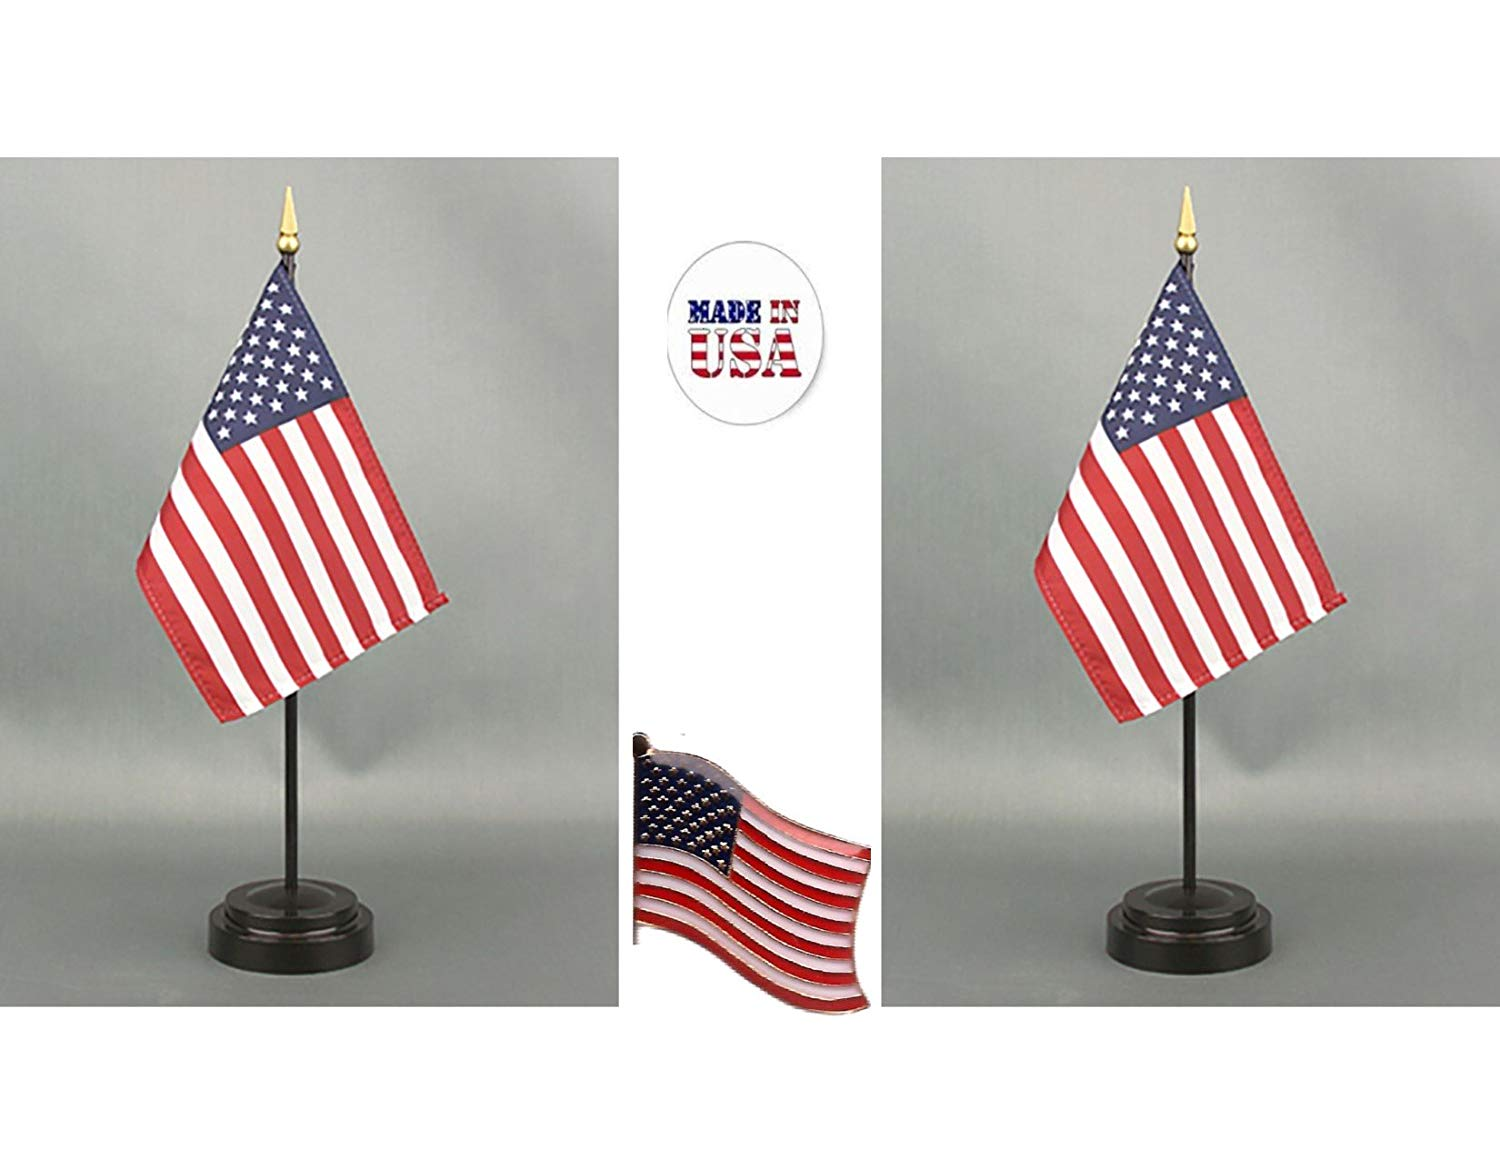 """Made in The USA. 2 United States of America 4""""x6"""" Miniature Office Desk & Little Hand Waving Table Flags Includes 2 Flag Stands & 2 USA Small Mini Stick Flags, Plus 1 American Flag Lapel Pin."""